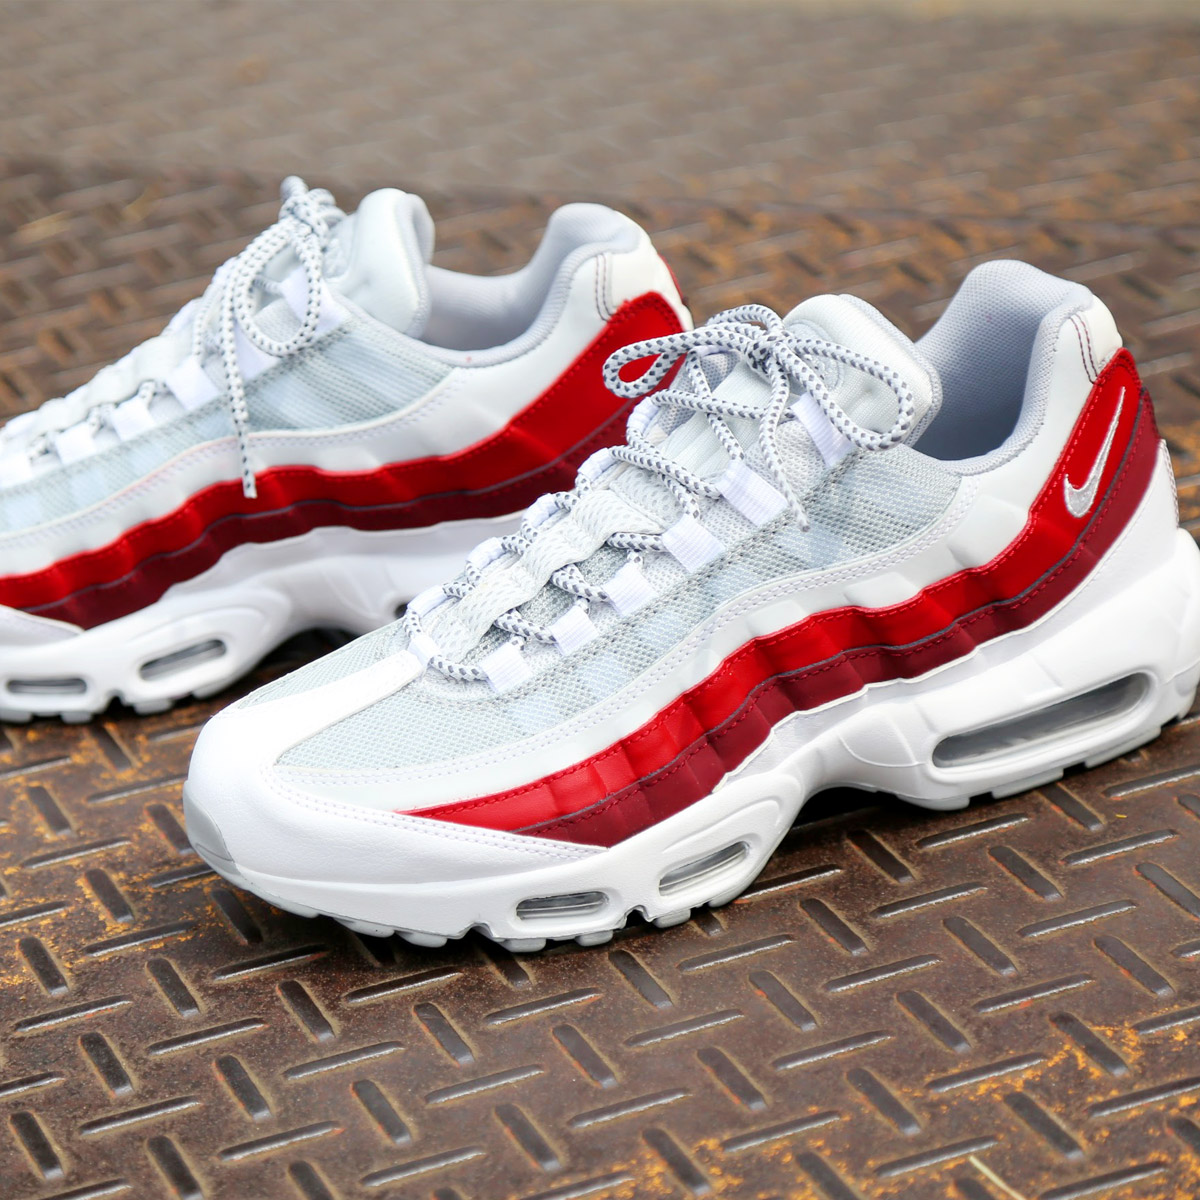 Nike Air Max 95 Heels - Musée des impressionnismes Giverny aa96b7bb8208